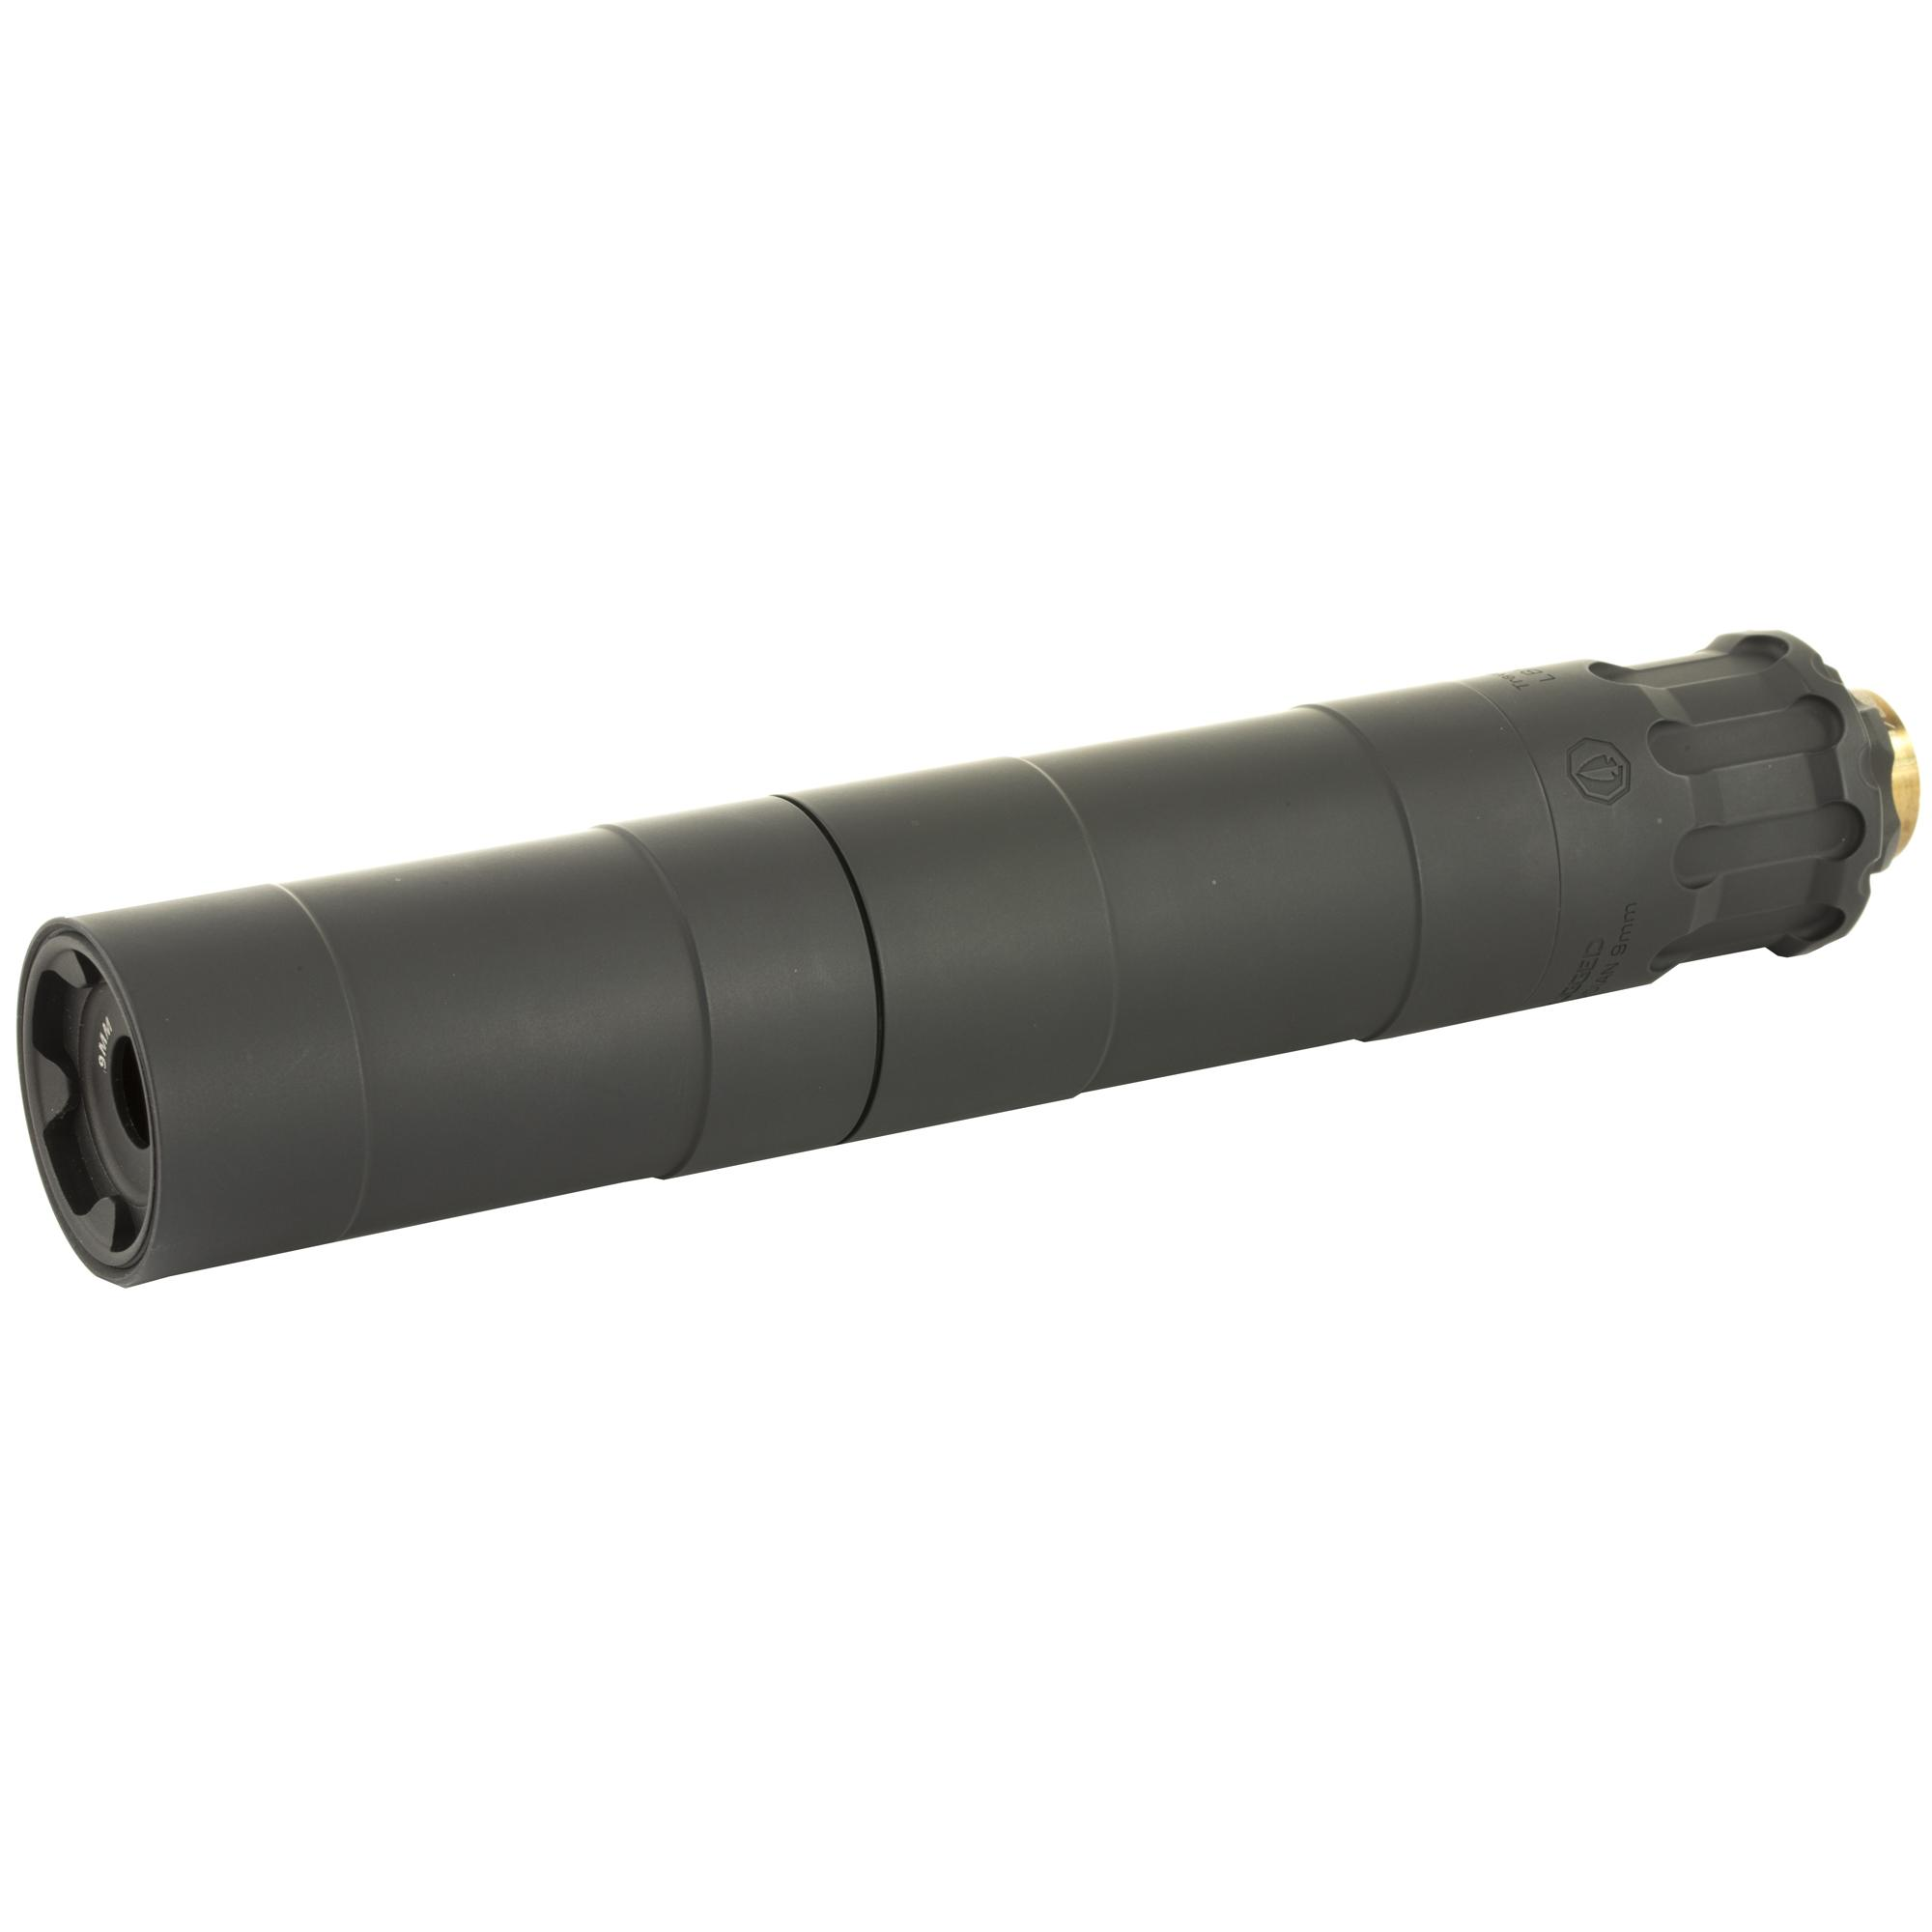 Rugged Suppressors Rugged Obsidian 9 Suppressor